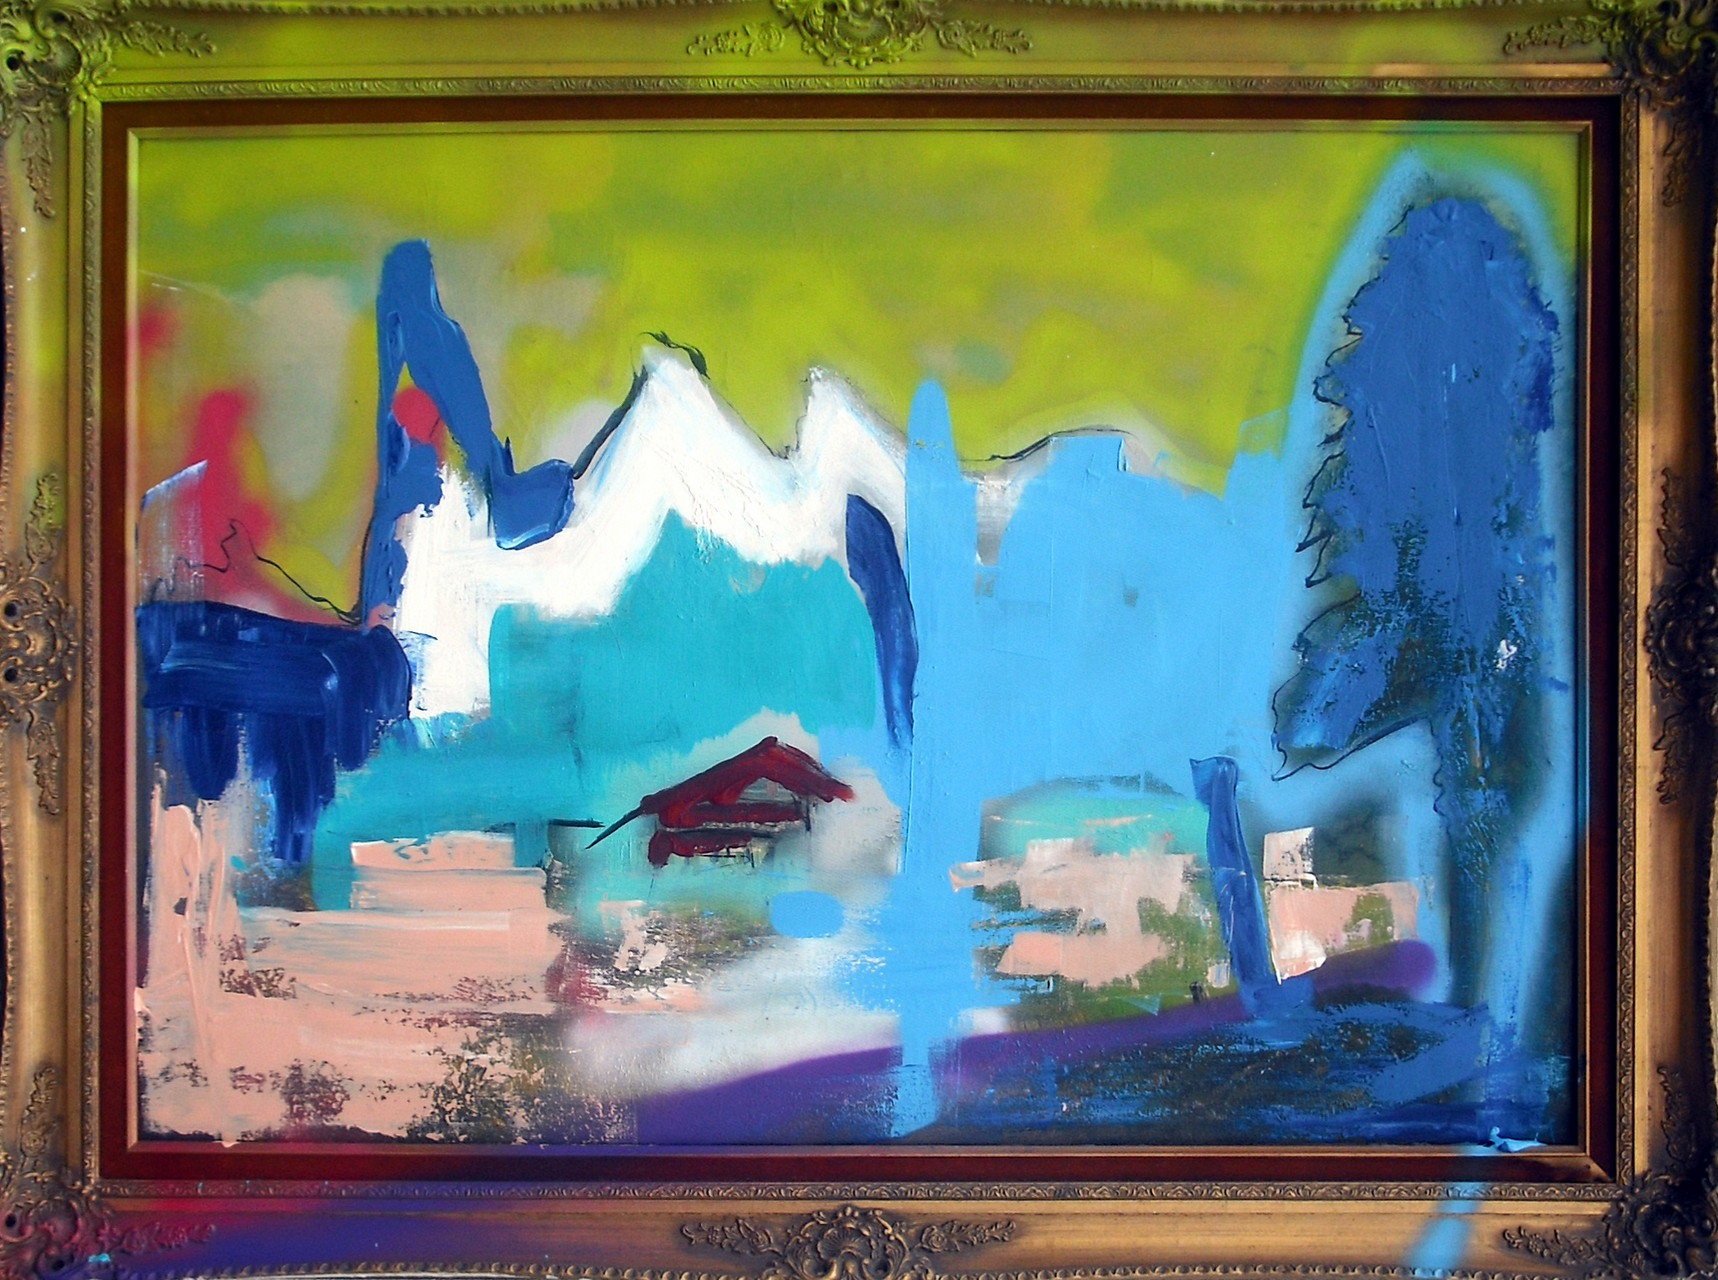 'bully waste-landscape renewed' (Spray paint, Acrylic and Ink on Canvas, 120x90cm)